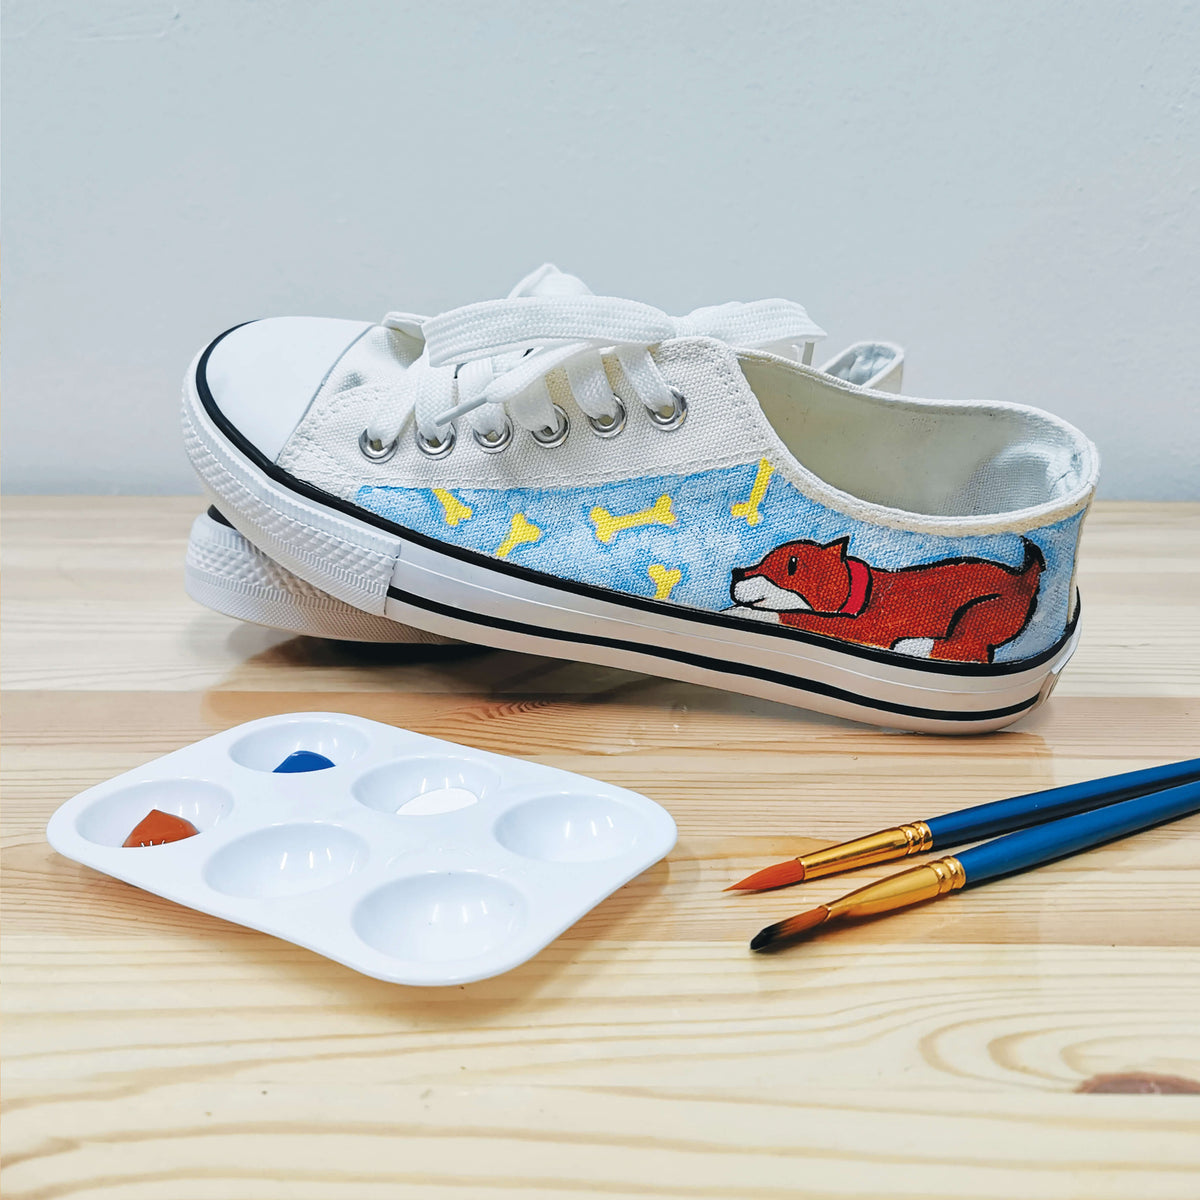 DIY Basic Sneaker Painting Kit